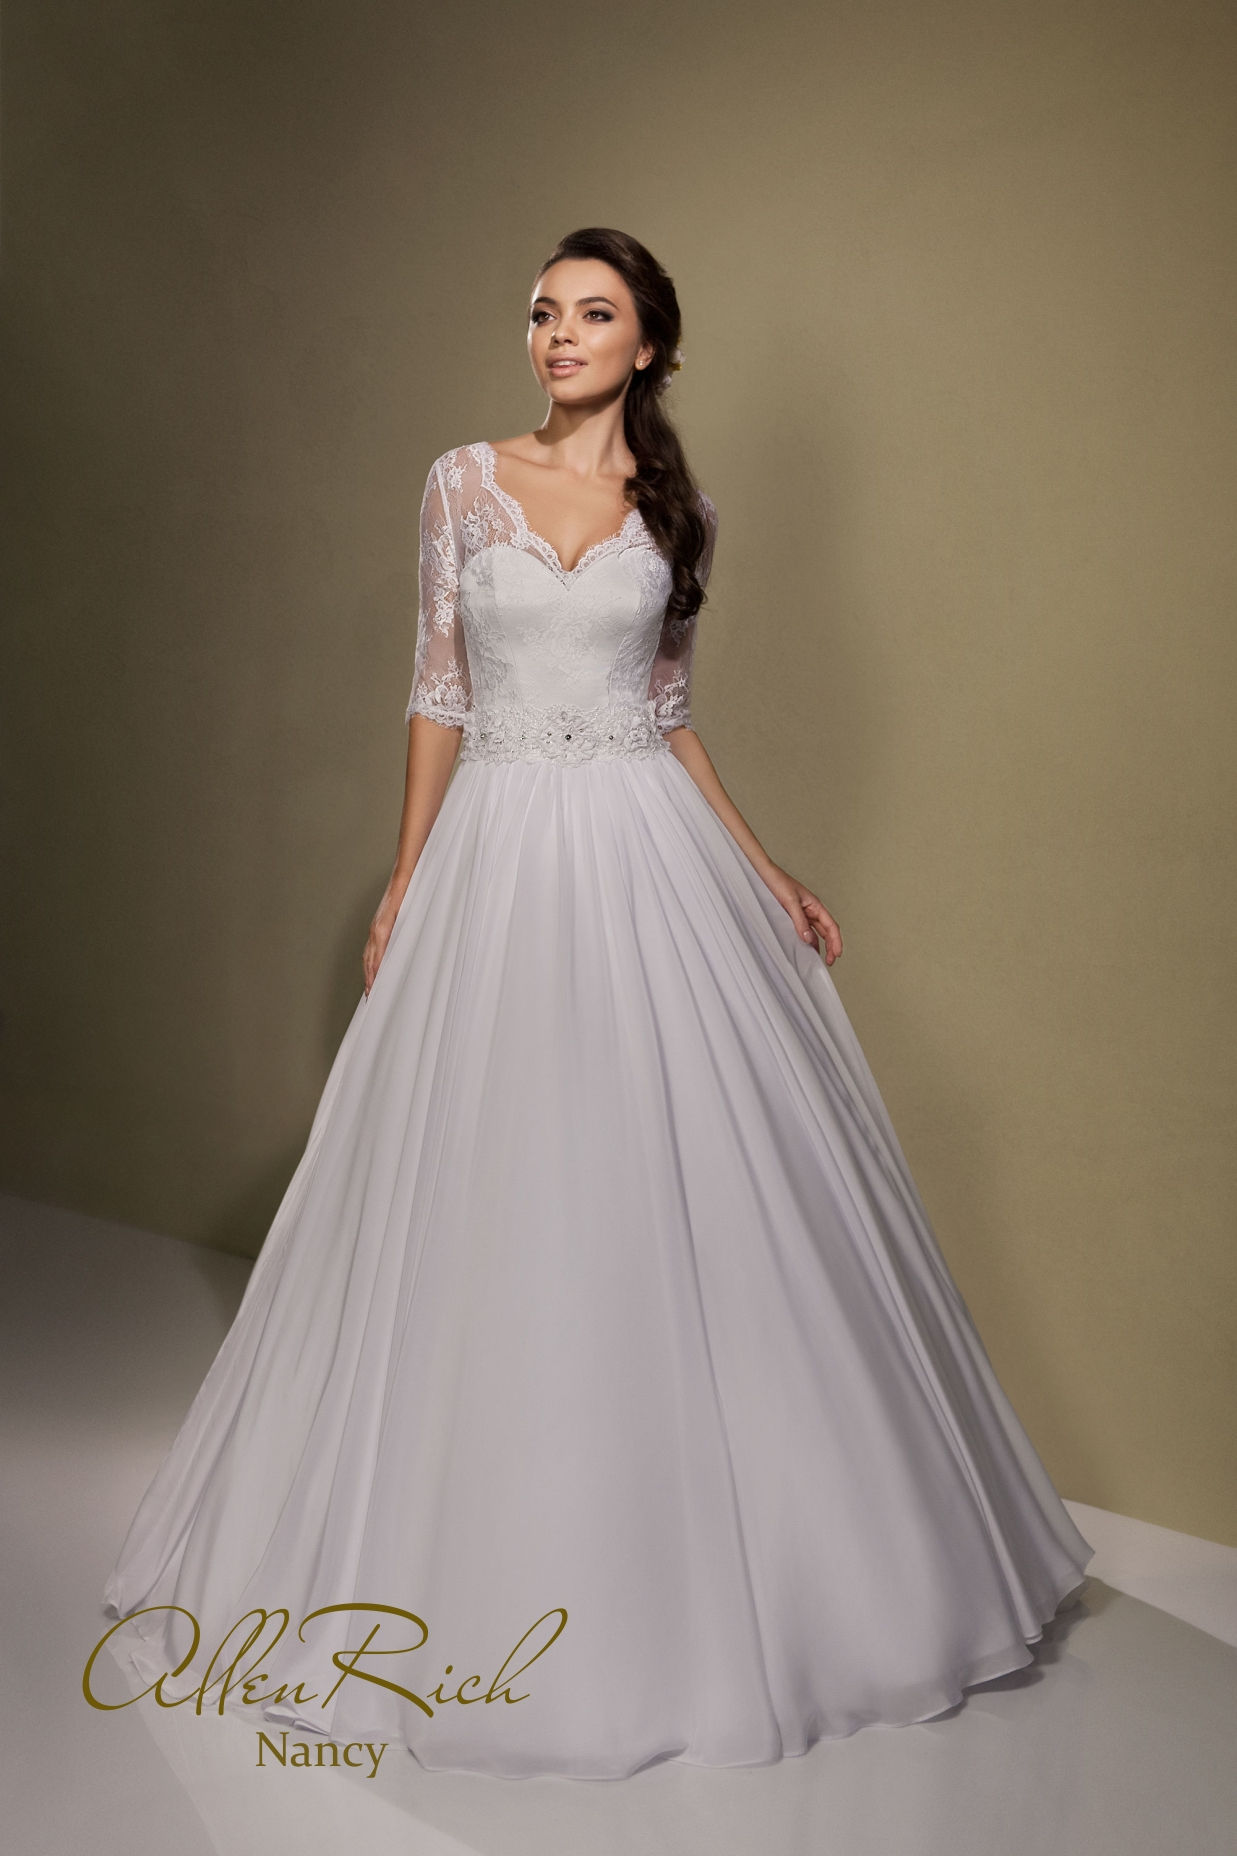 Nancy wedding dress